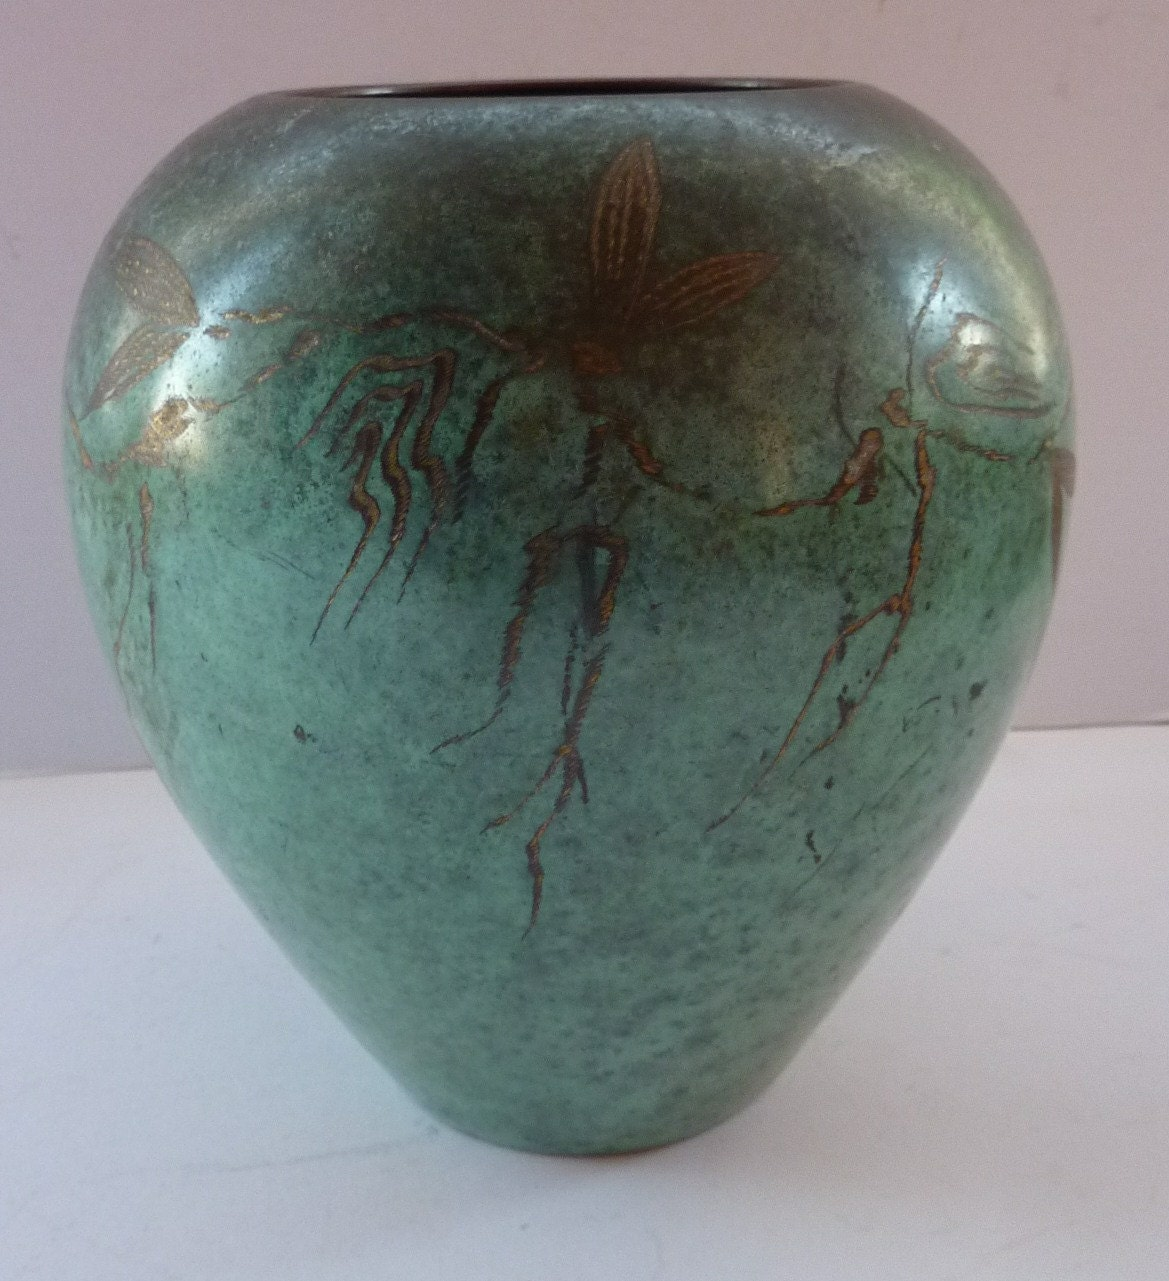 ART DECO WMF Ikora Bronze Vase. Rarer Large Bulbous 1920s. Jugendstil Bauhaus Stylish Design